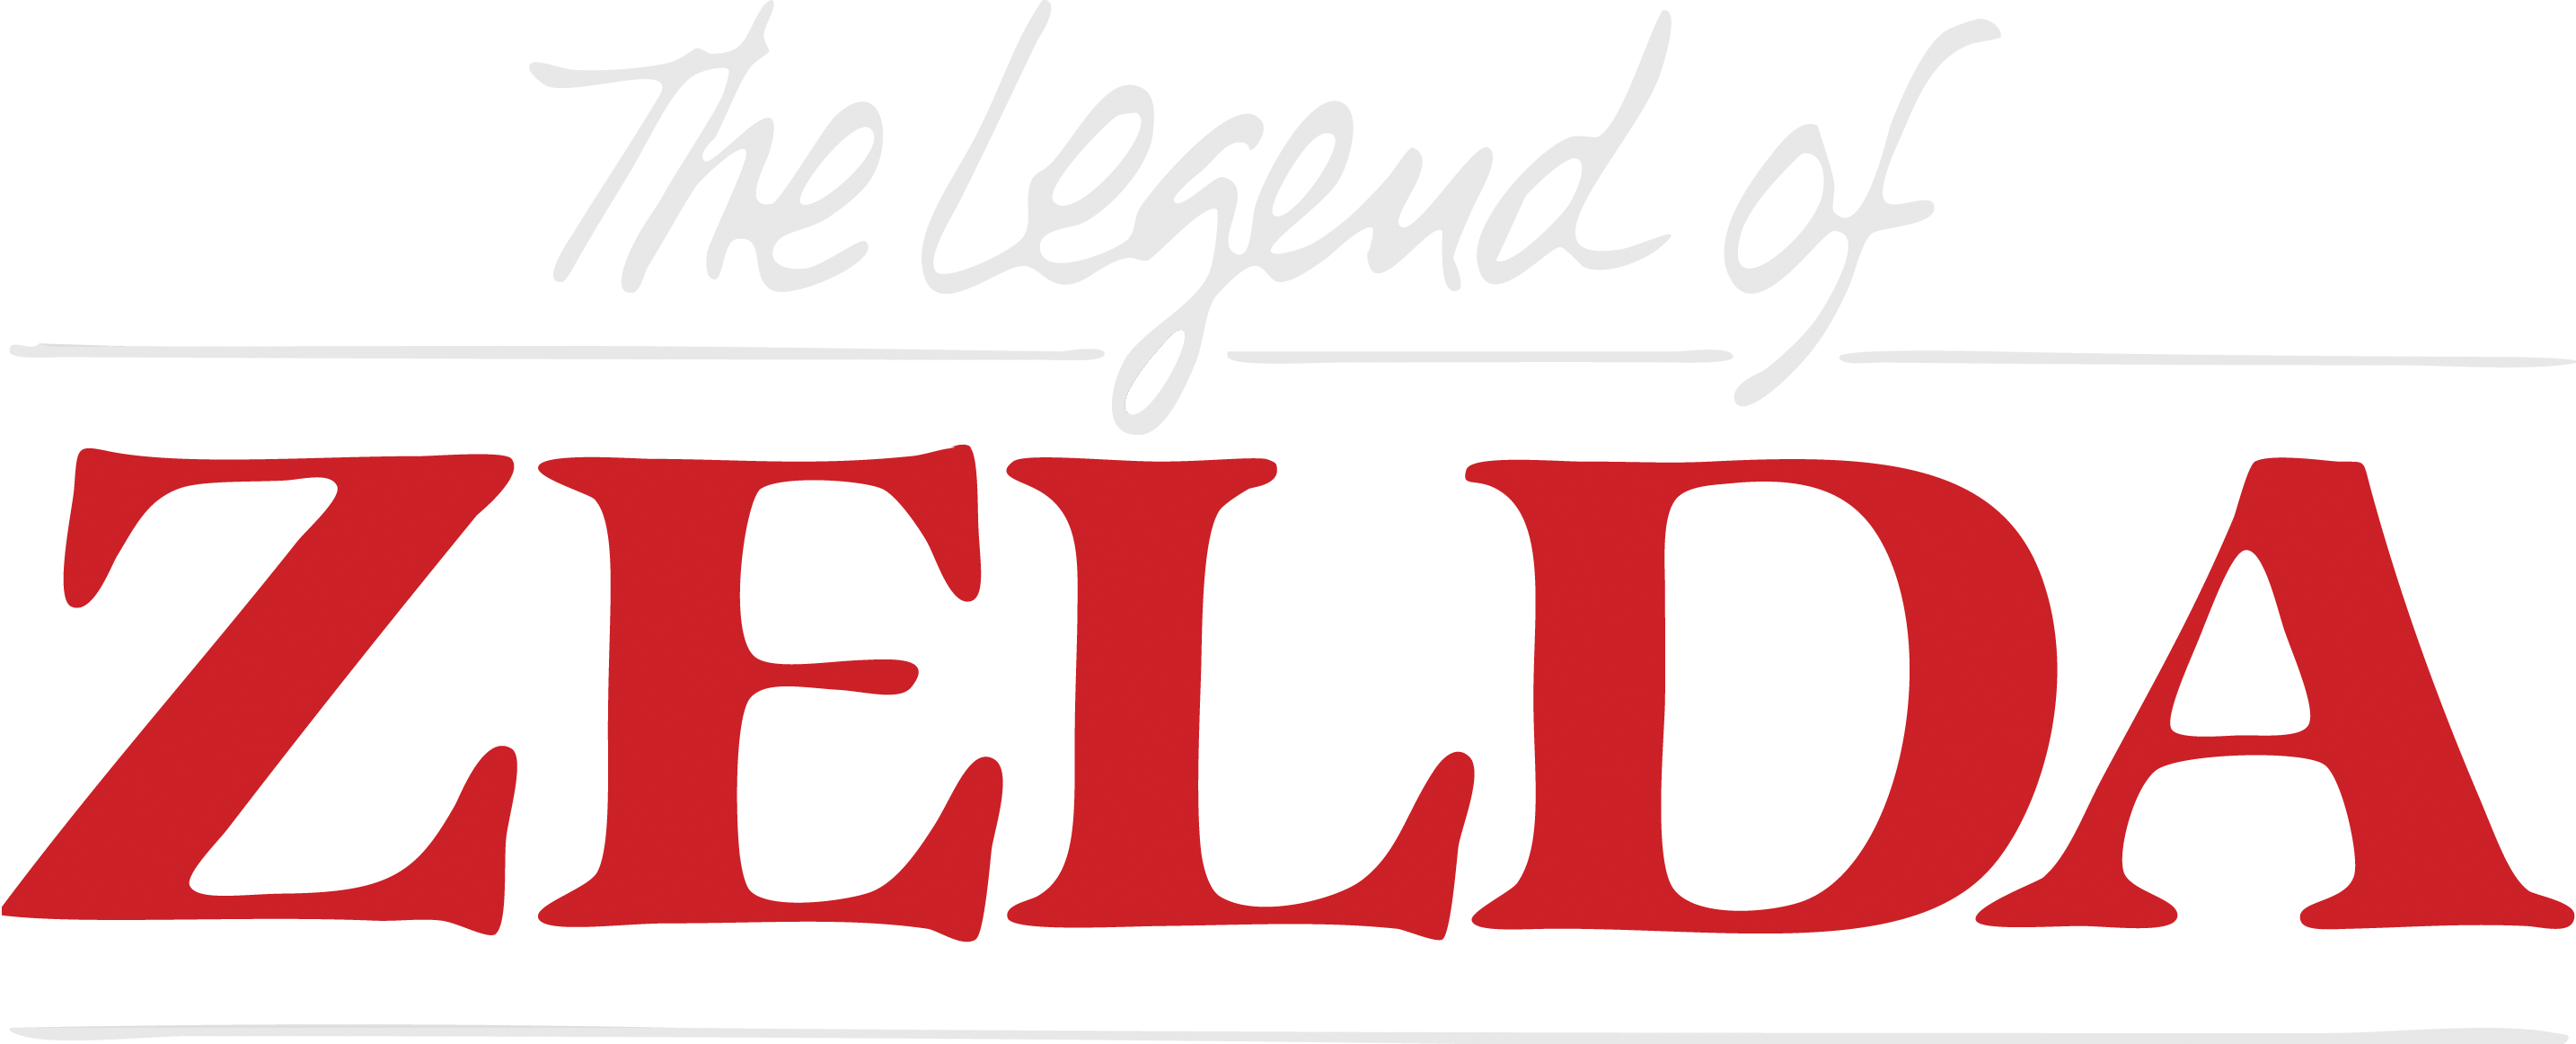 Zelda clipart logo PNG Transparent Mart Legend of